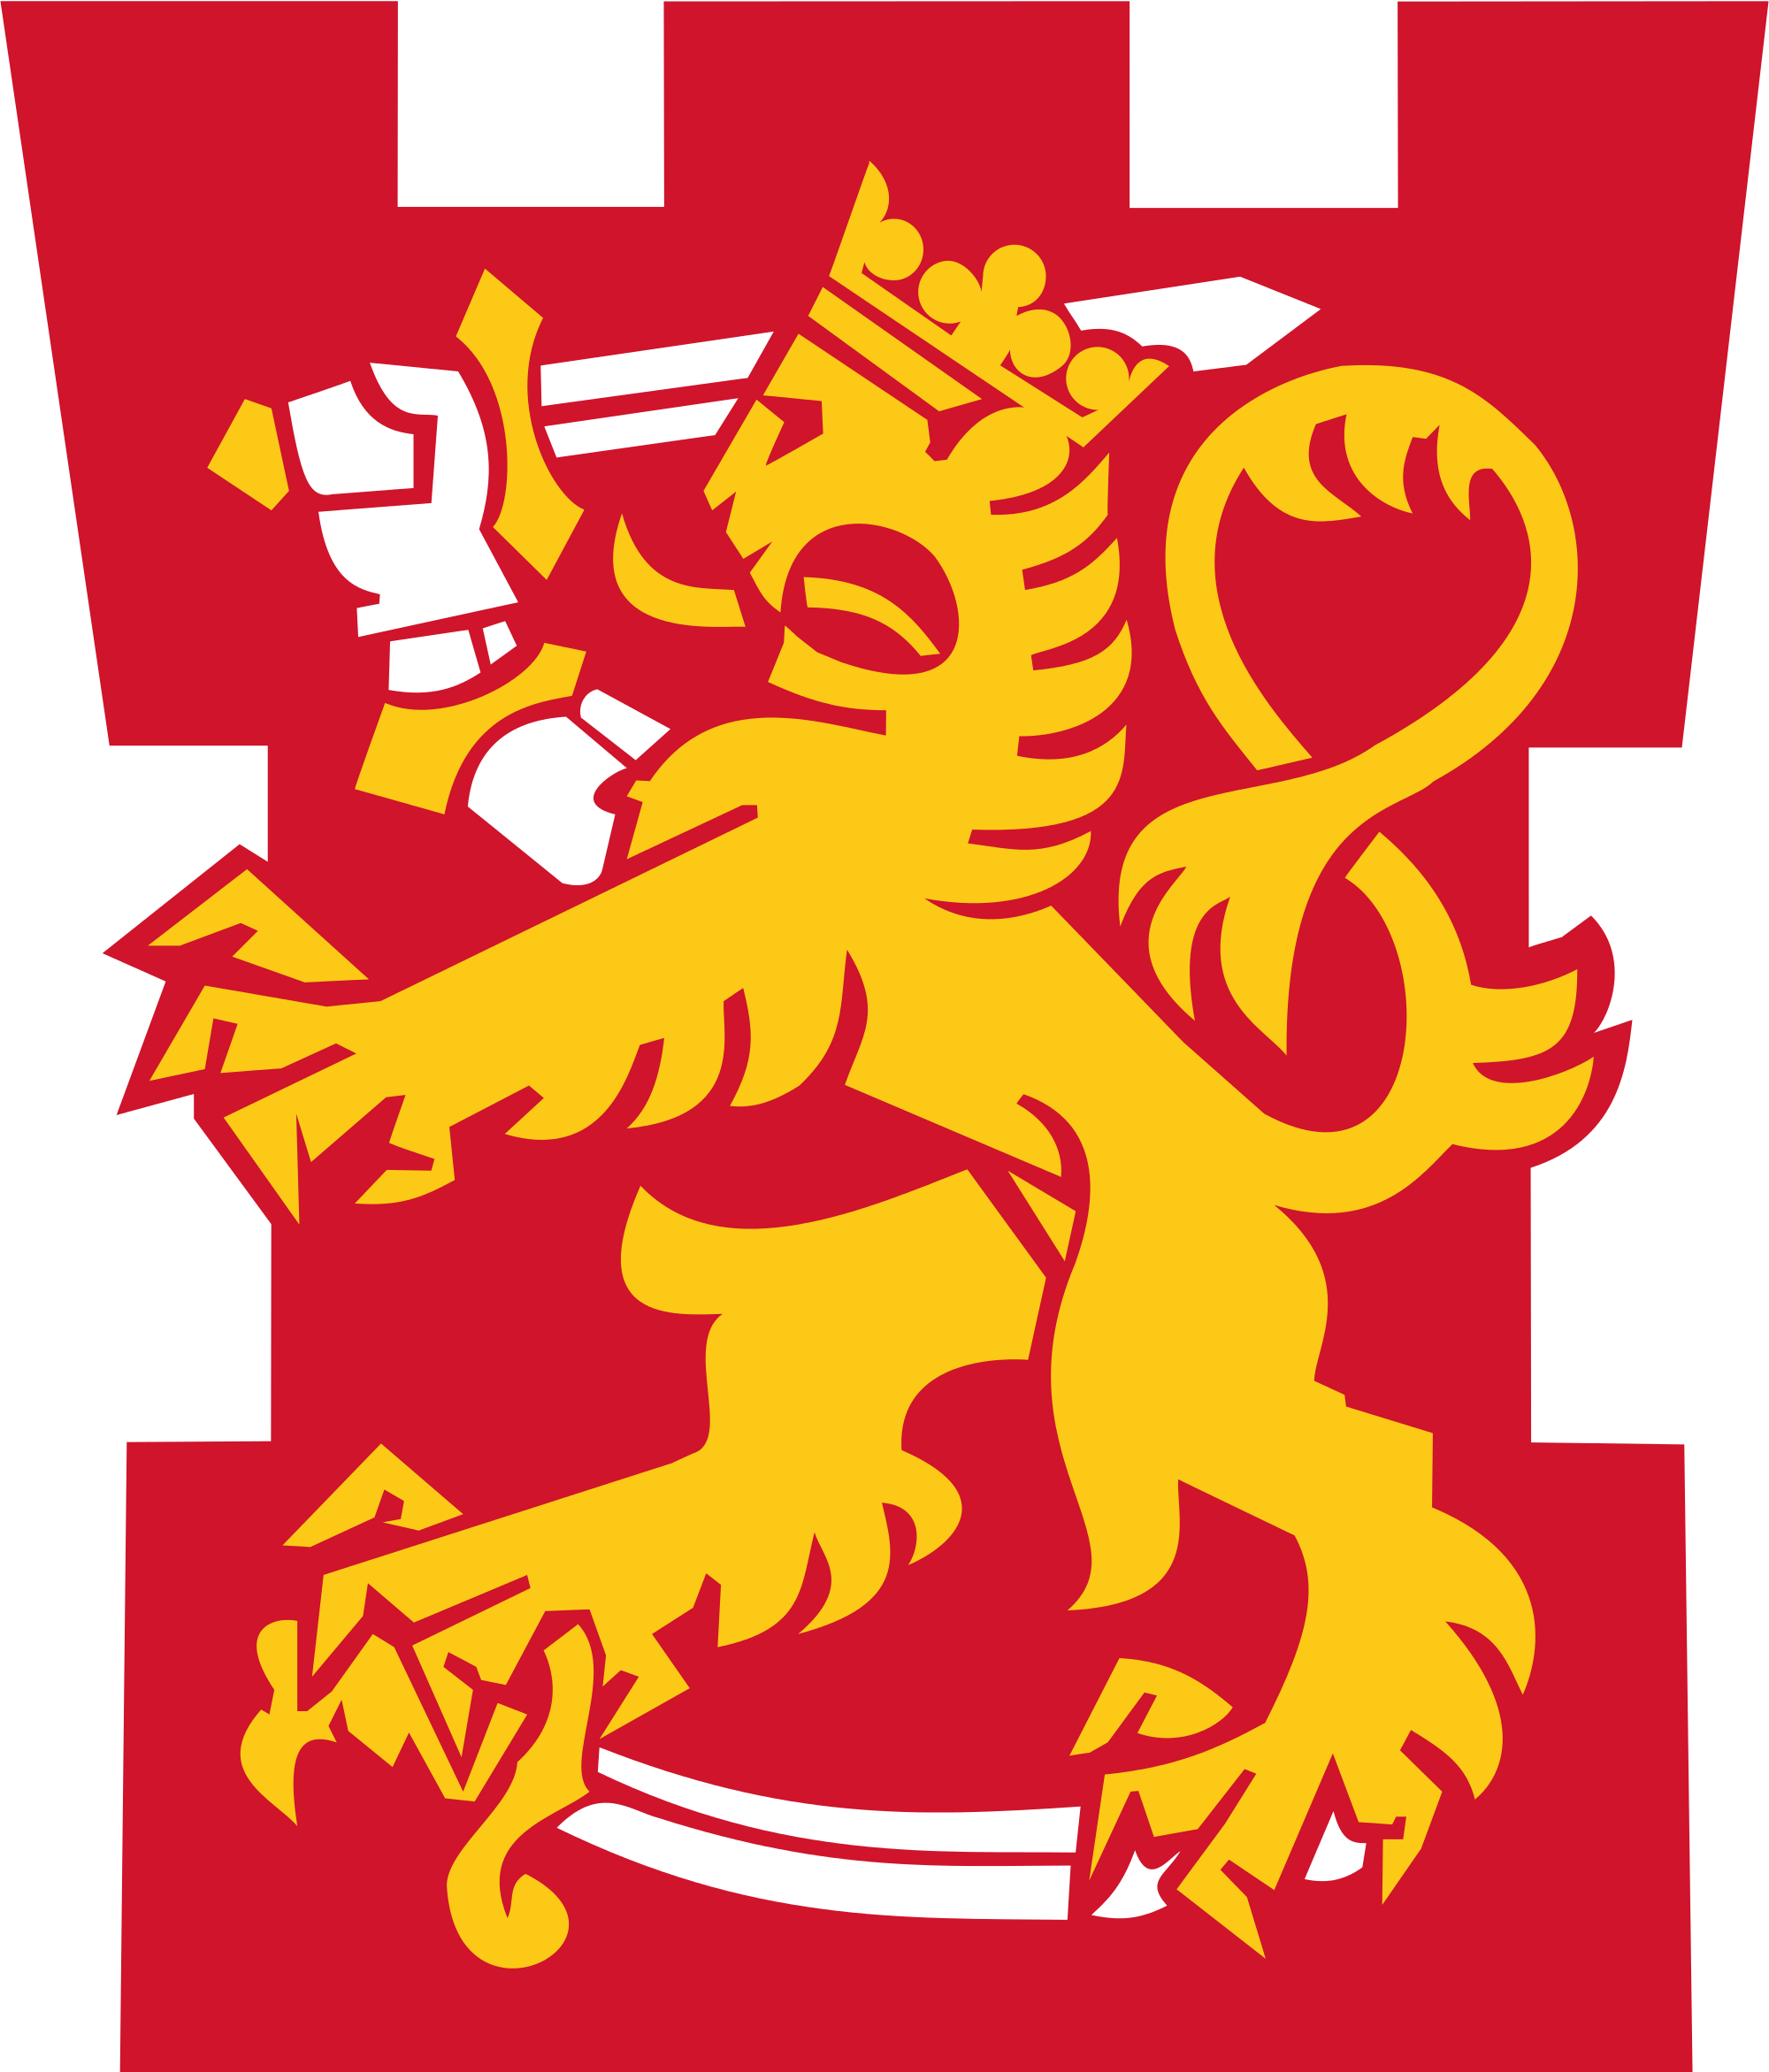 Government clipart military spending. Finnish defence forces wikipedia